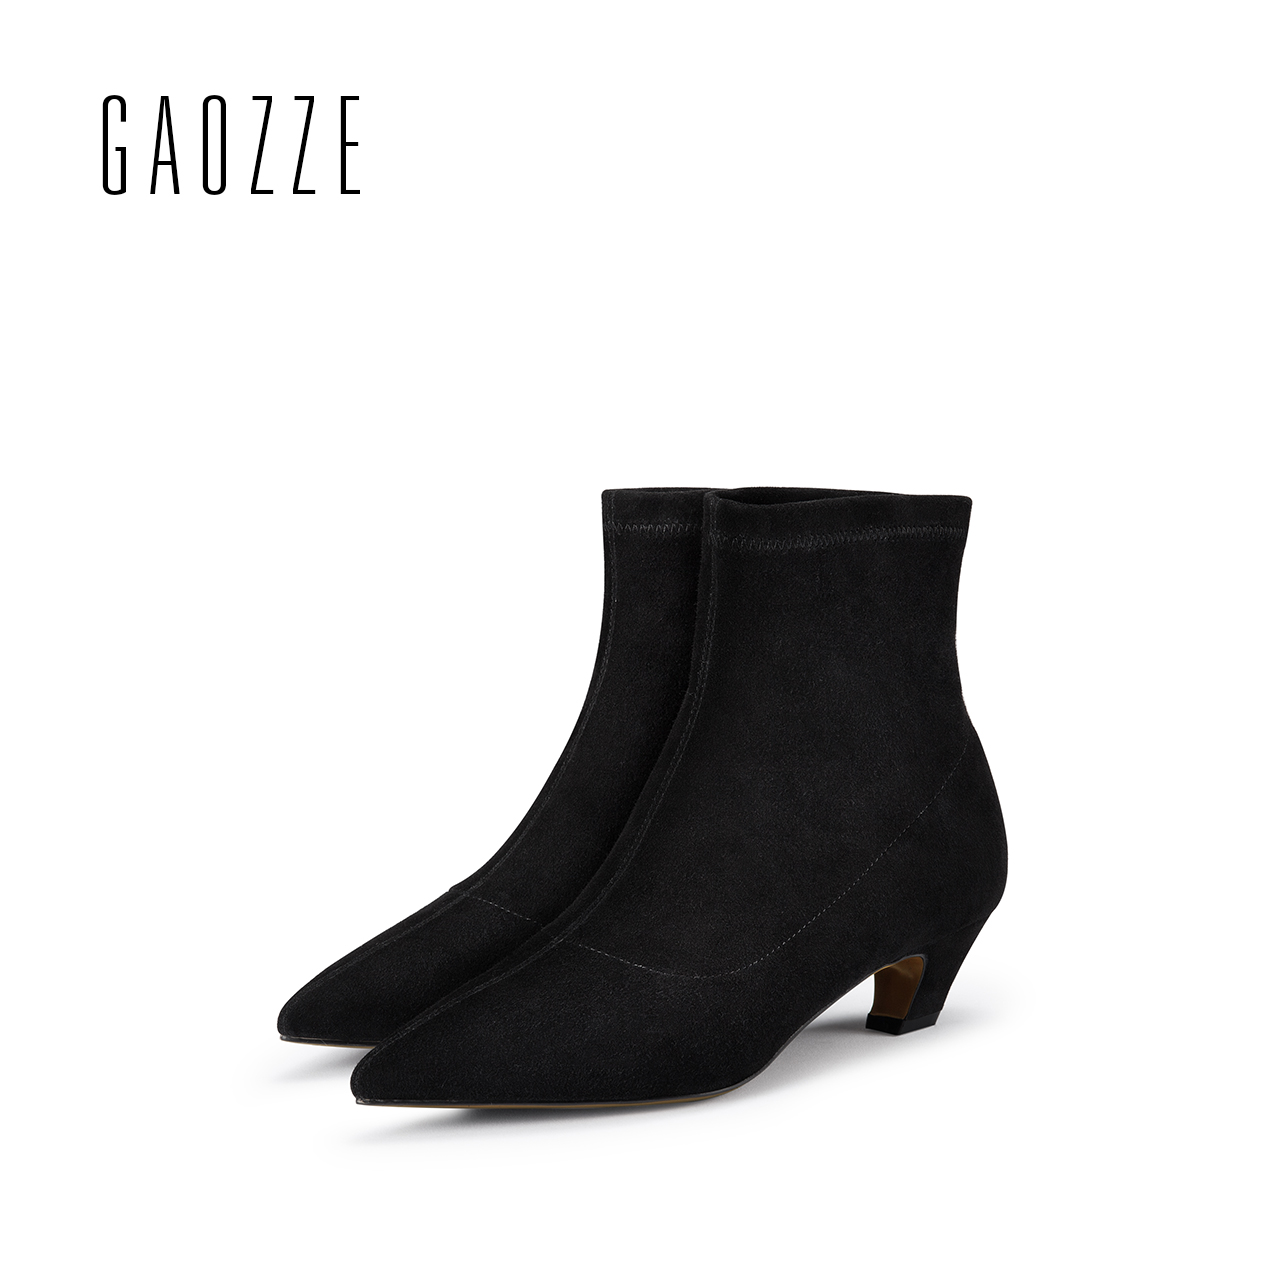 GAOZZE ankle boots for women black genuine suede leather boots women pointed toe fashion socks boots comfortable 2017 autumn new new arrival black leather and suede ankle boots women pointed toe short boots wedges boots metal buckles decorated free shipping